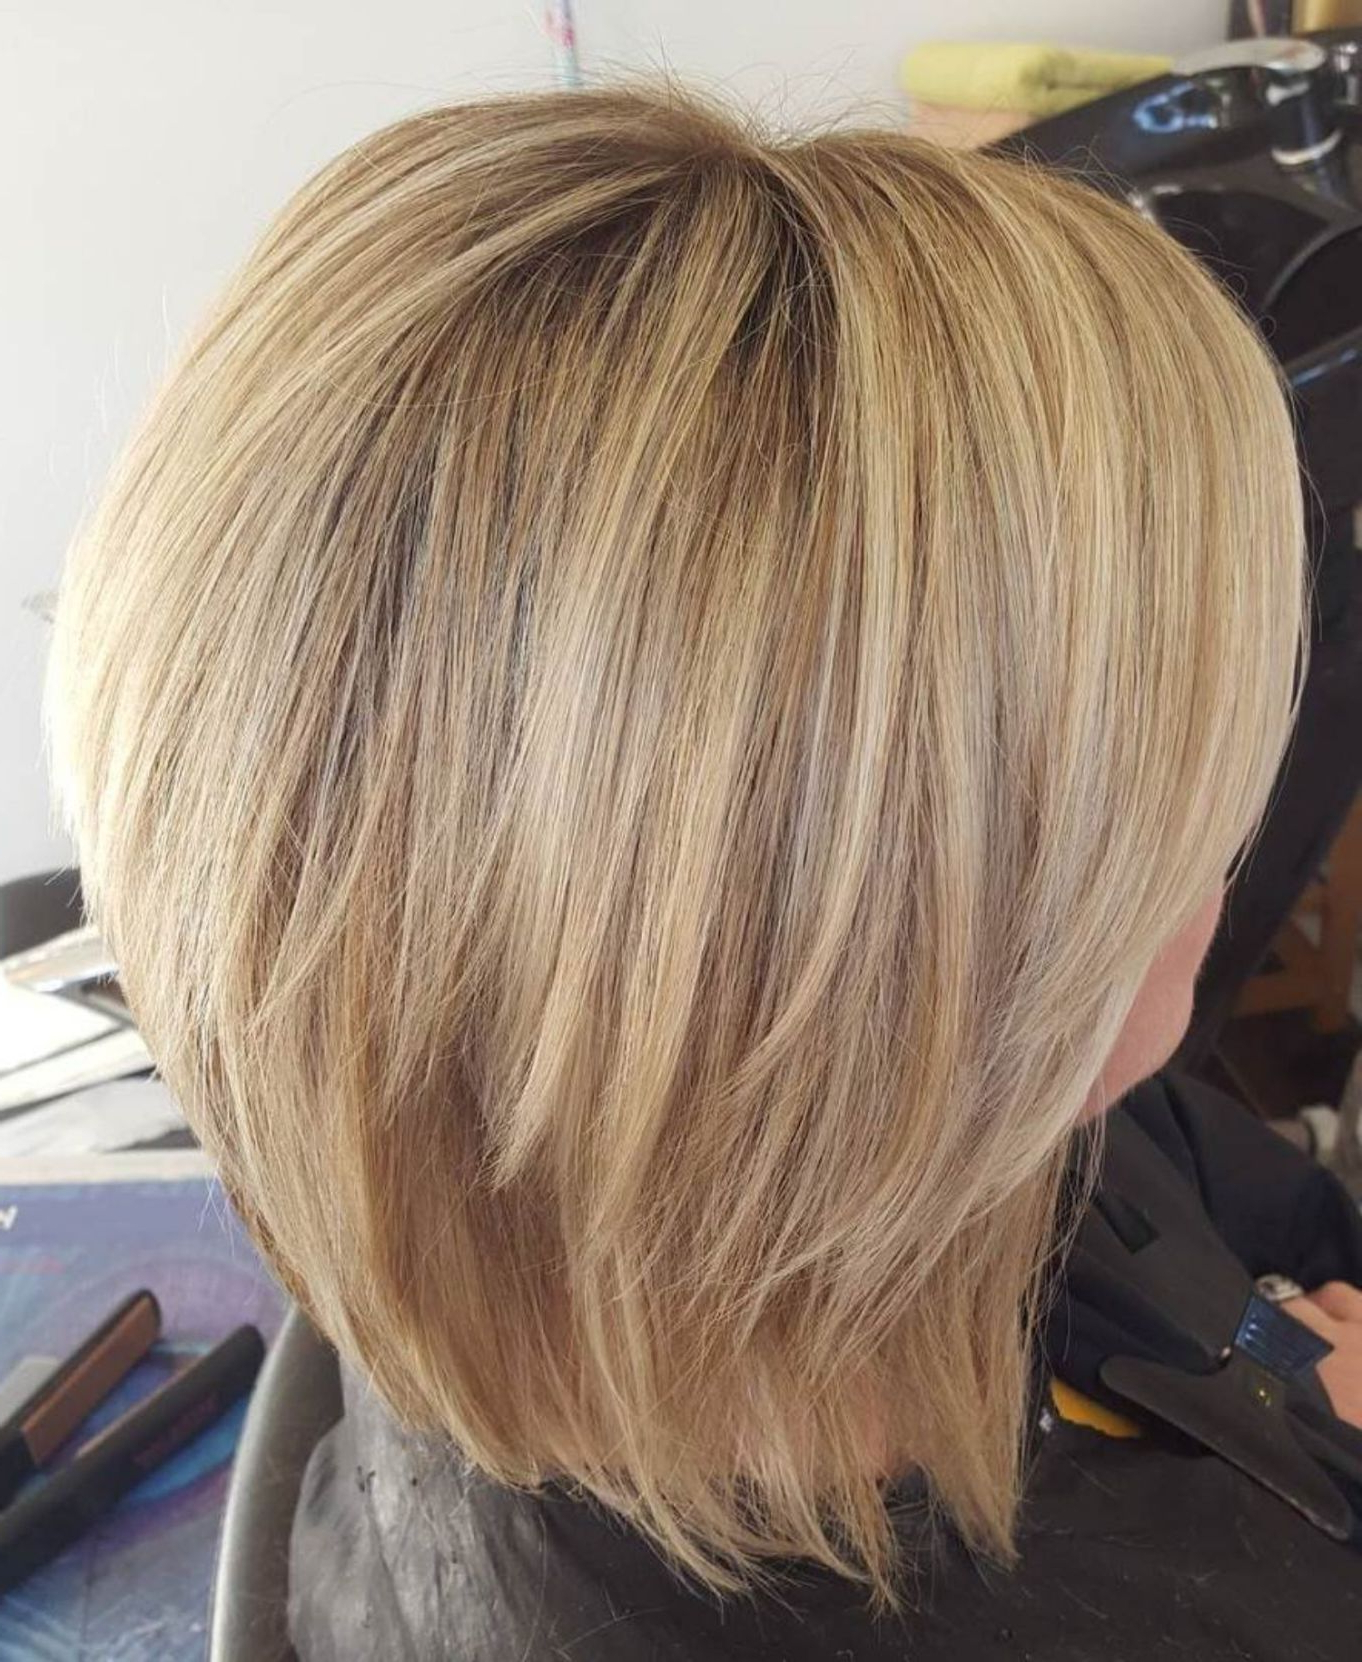 Pin On Μαλλιά Regarding Choppy Bob Hairstyles With Blonde Ends (Gallery 12 of 20)